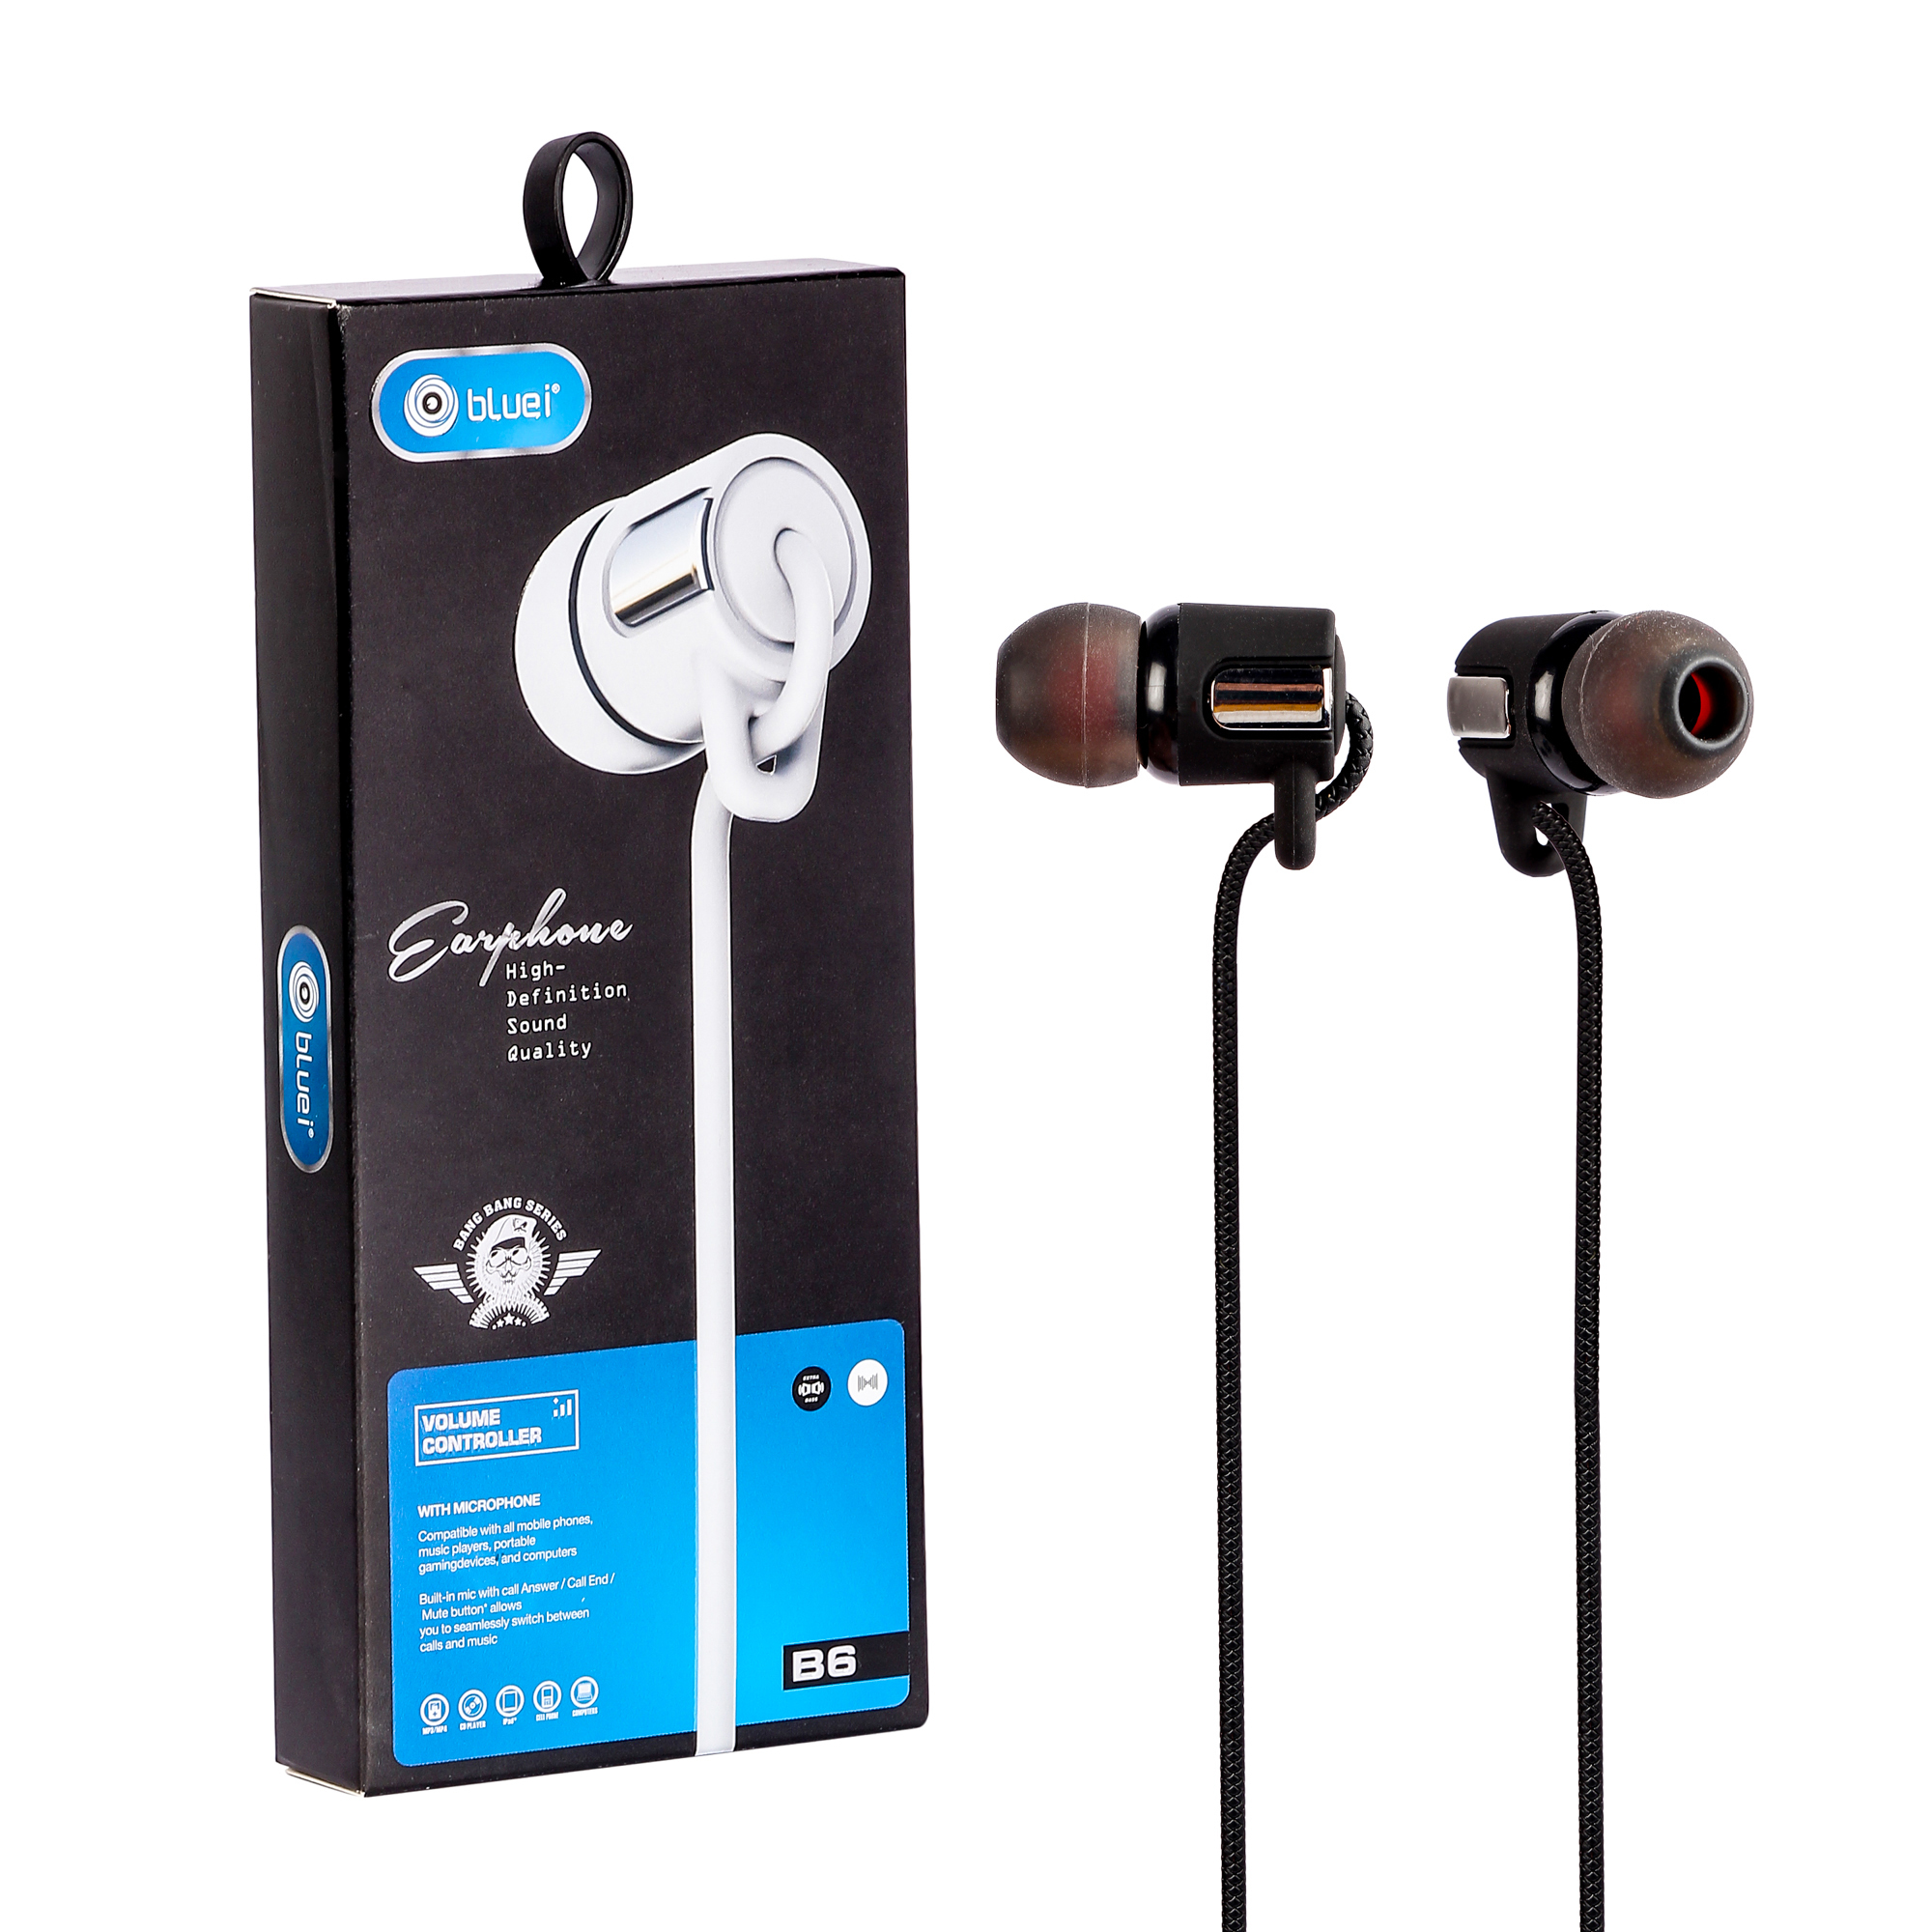 Bluei Bang Bang B6 Wired Handfree With Mic. 3.5 Mm Audio Jack